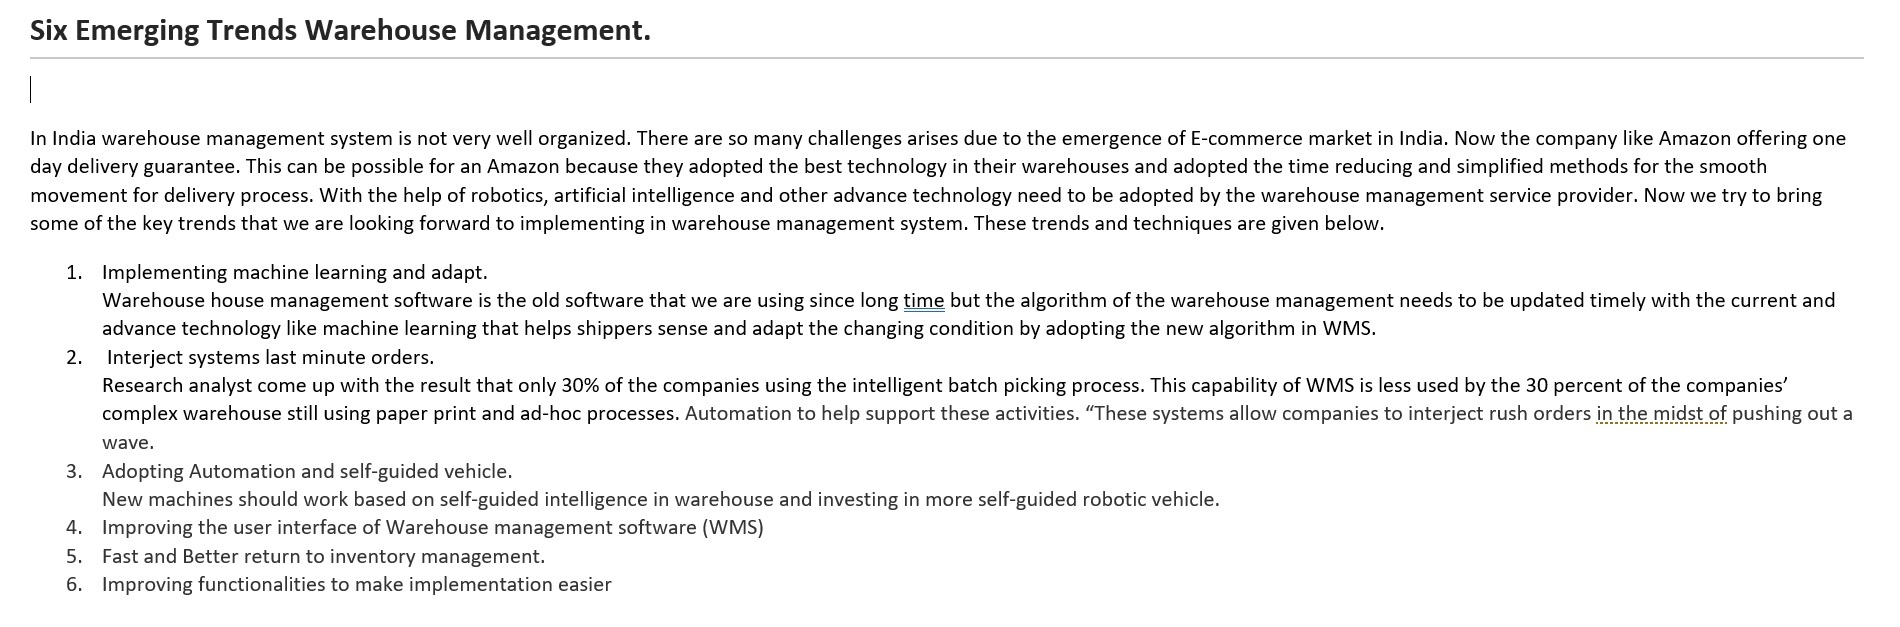 Six emerging trends in warehouse